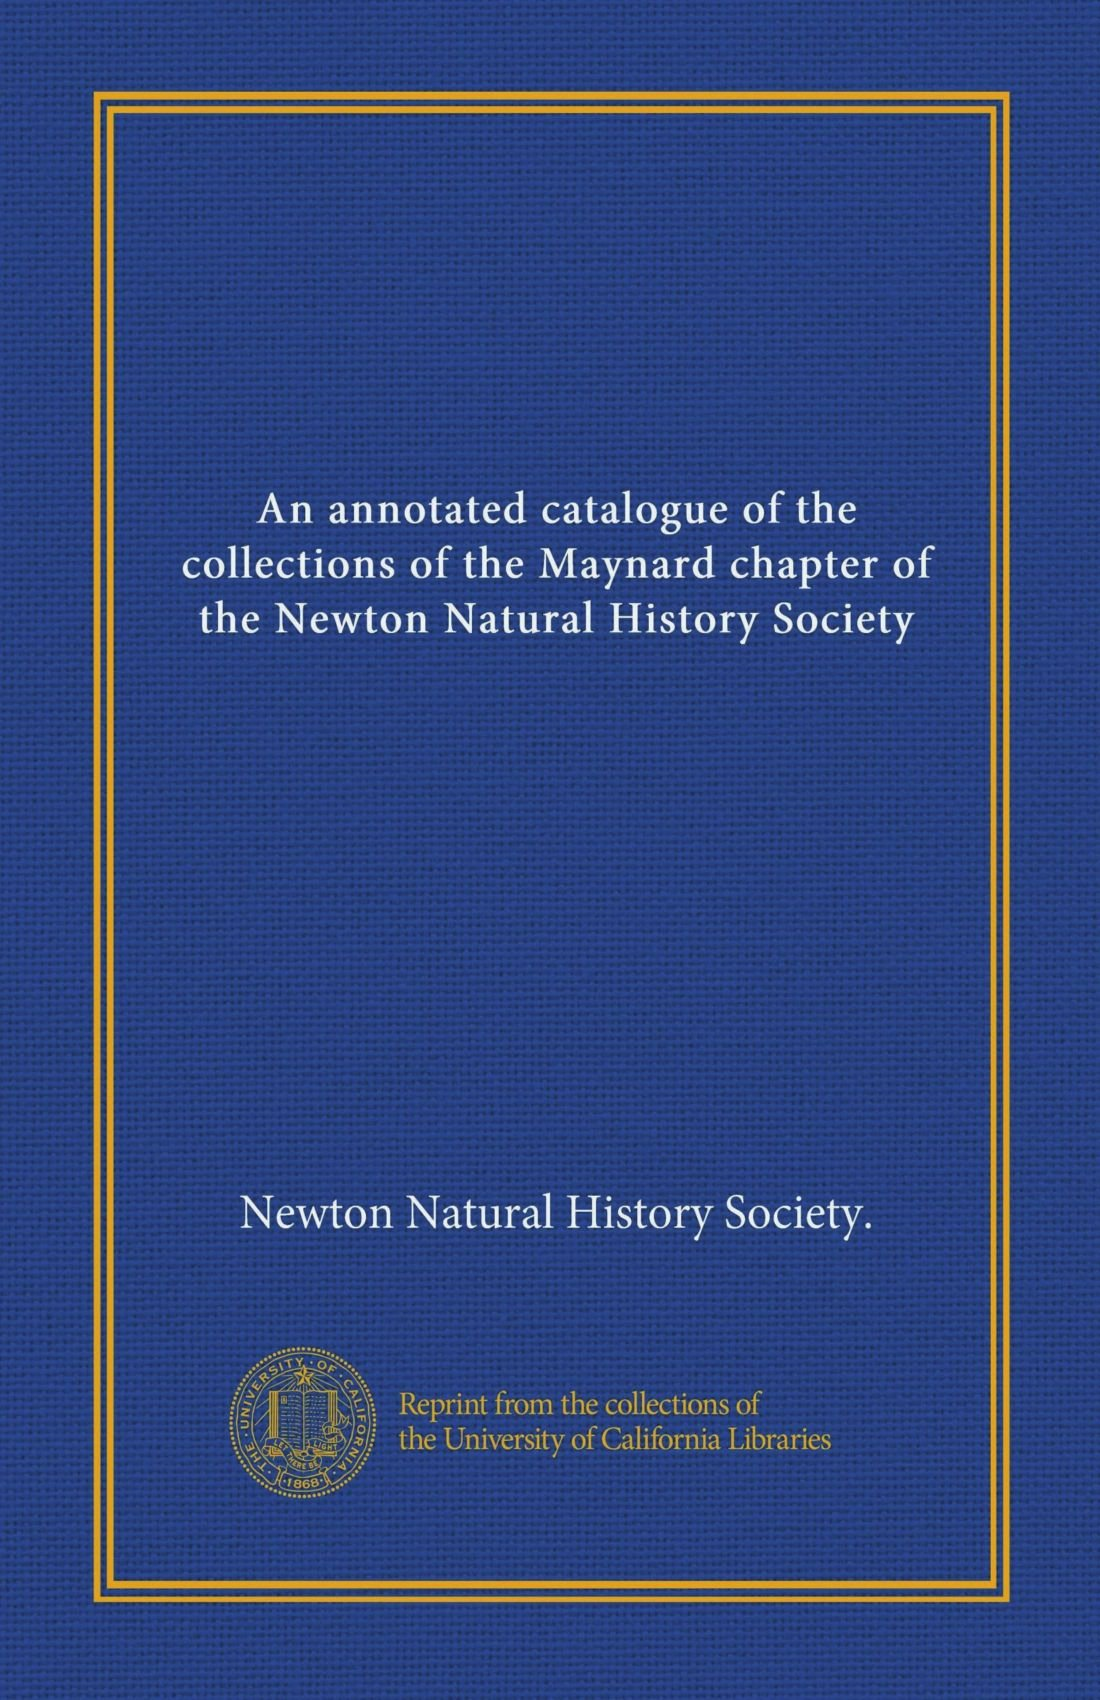 An annotated catalogue of the collections of the Maynard chapter of the Newton Natural History Society (Vol-1) pdf